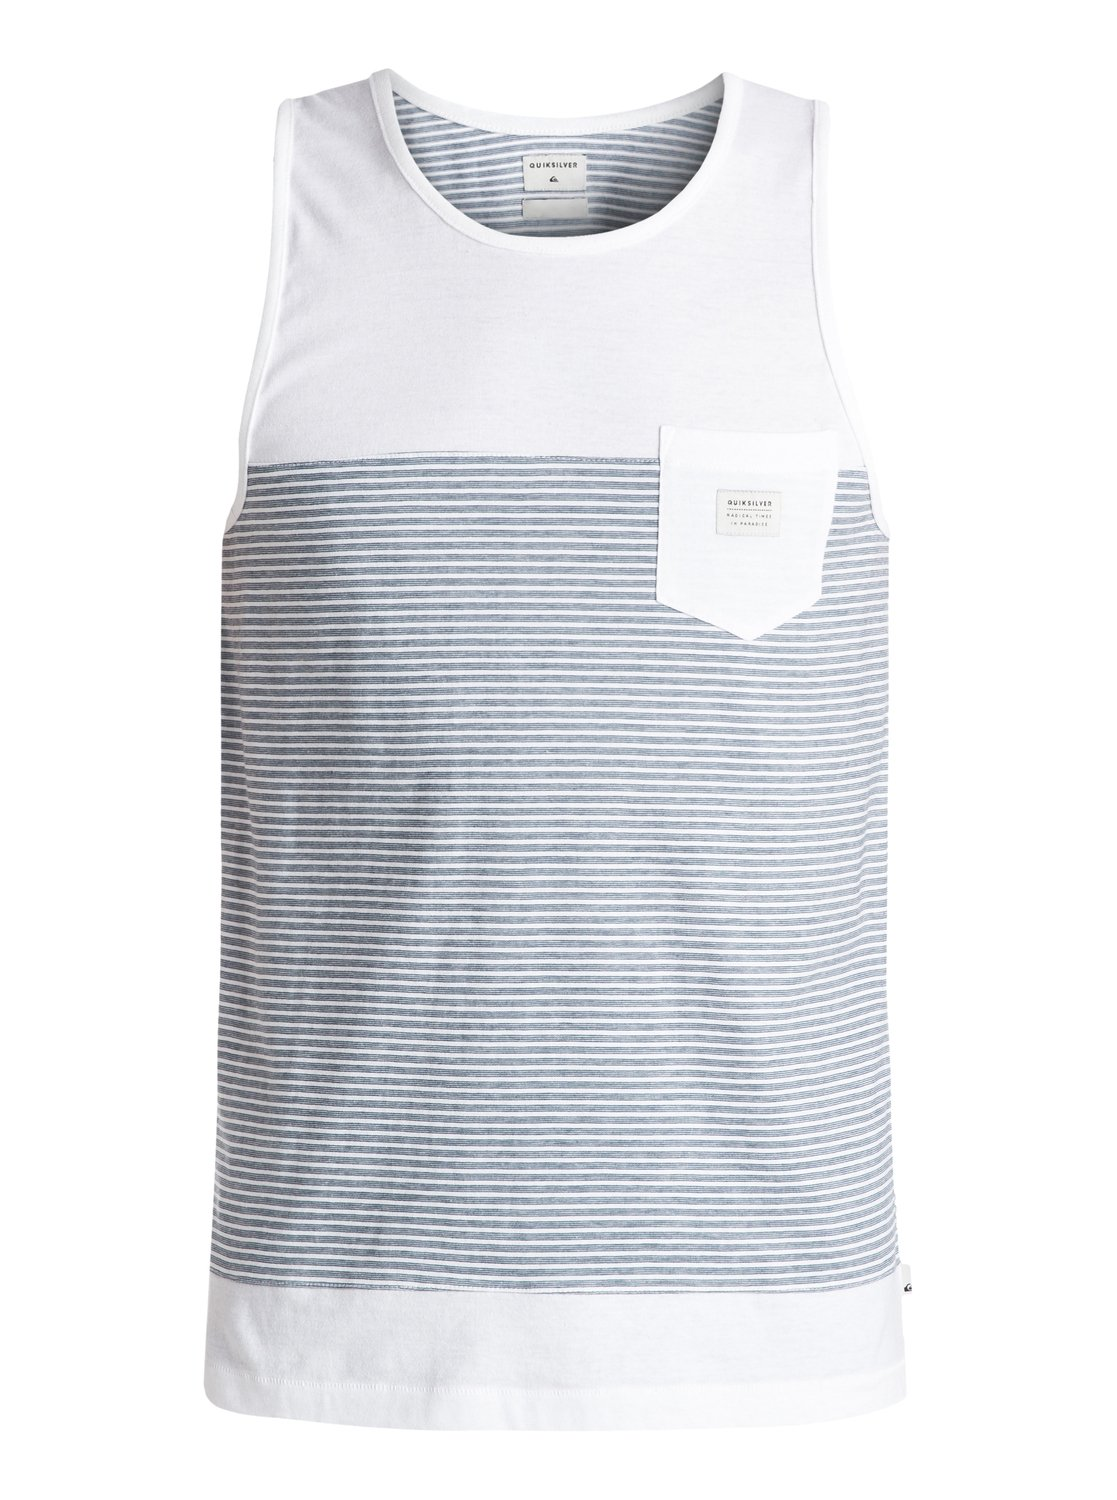 0712275f272ef0 Sum17 QUIKSILVER FULL TIDE TANK - Mens-Tanks   Blitz Surf Shop NZ - Surf